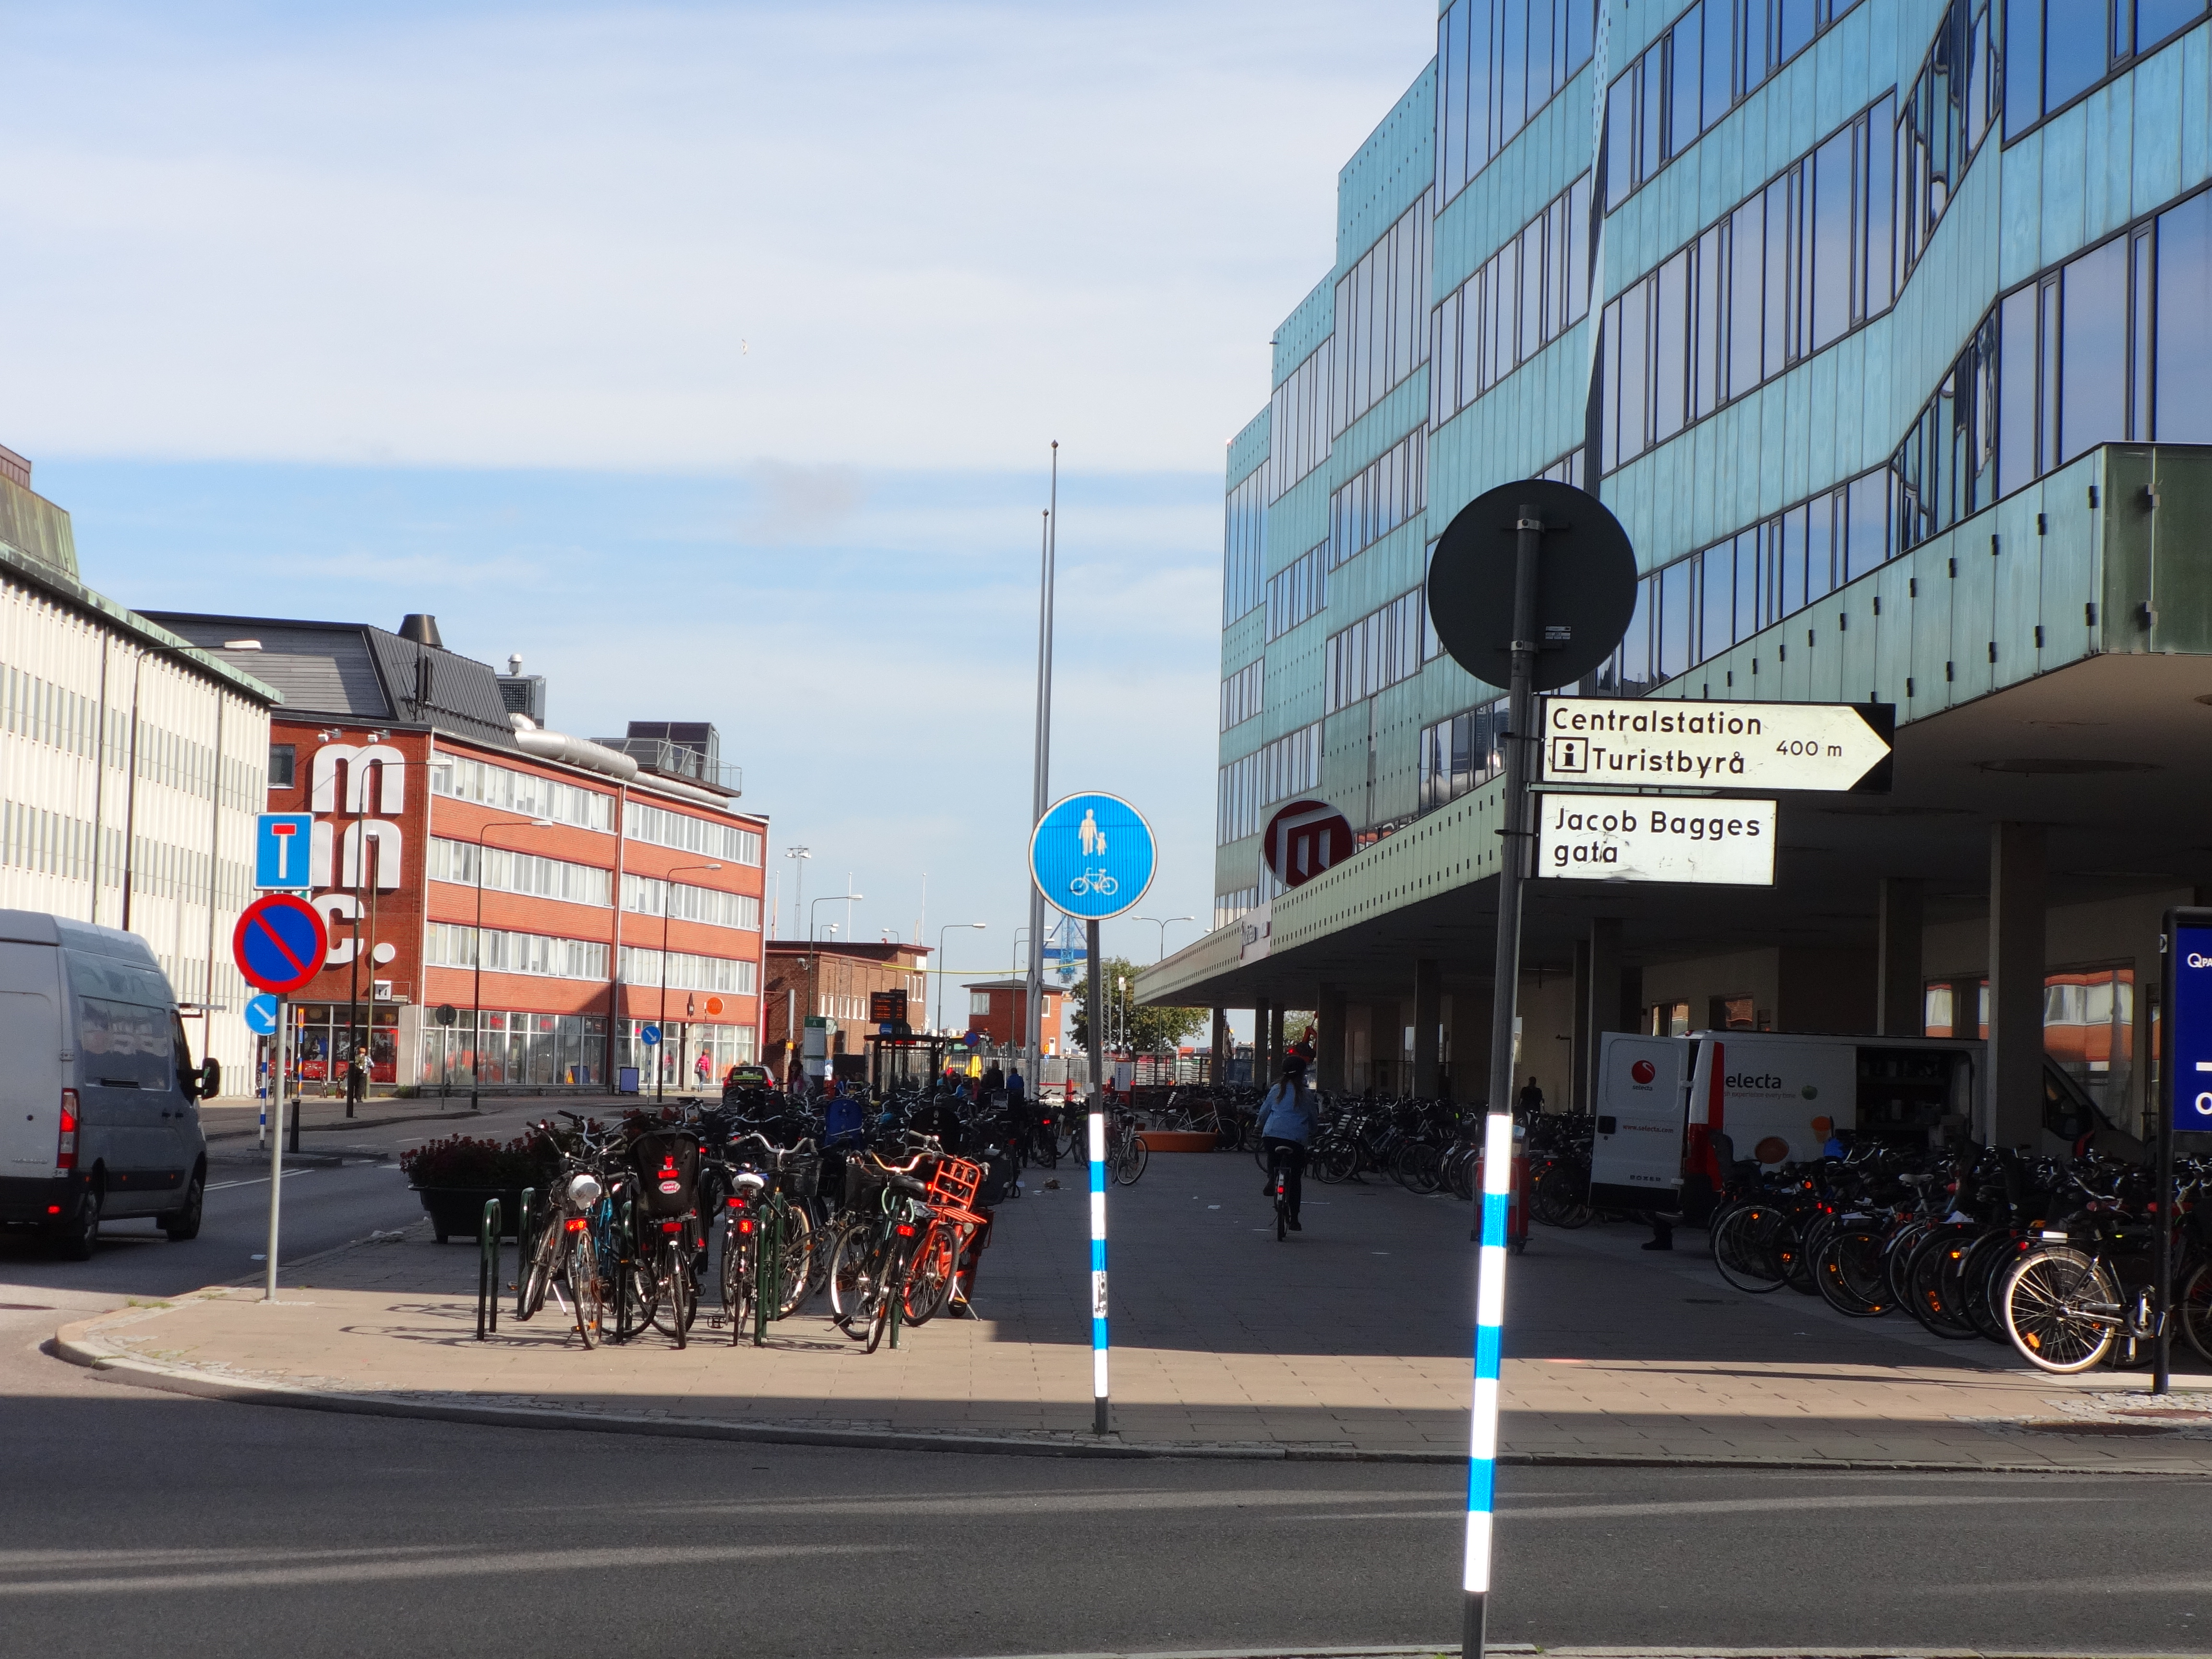 Out front of Malmö Hogskola, where I studied for the week. SO MANY BIKES! The sign notes a shared bike/pedestrian sidewalk with no designated space/lane for bikes.